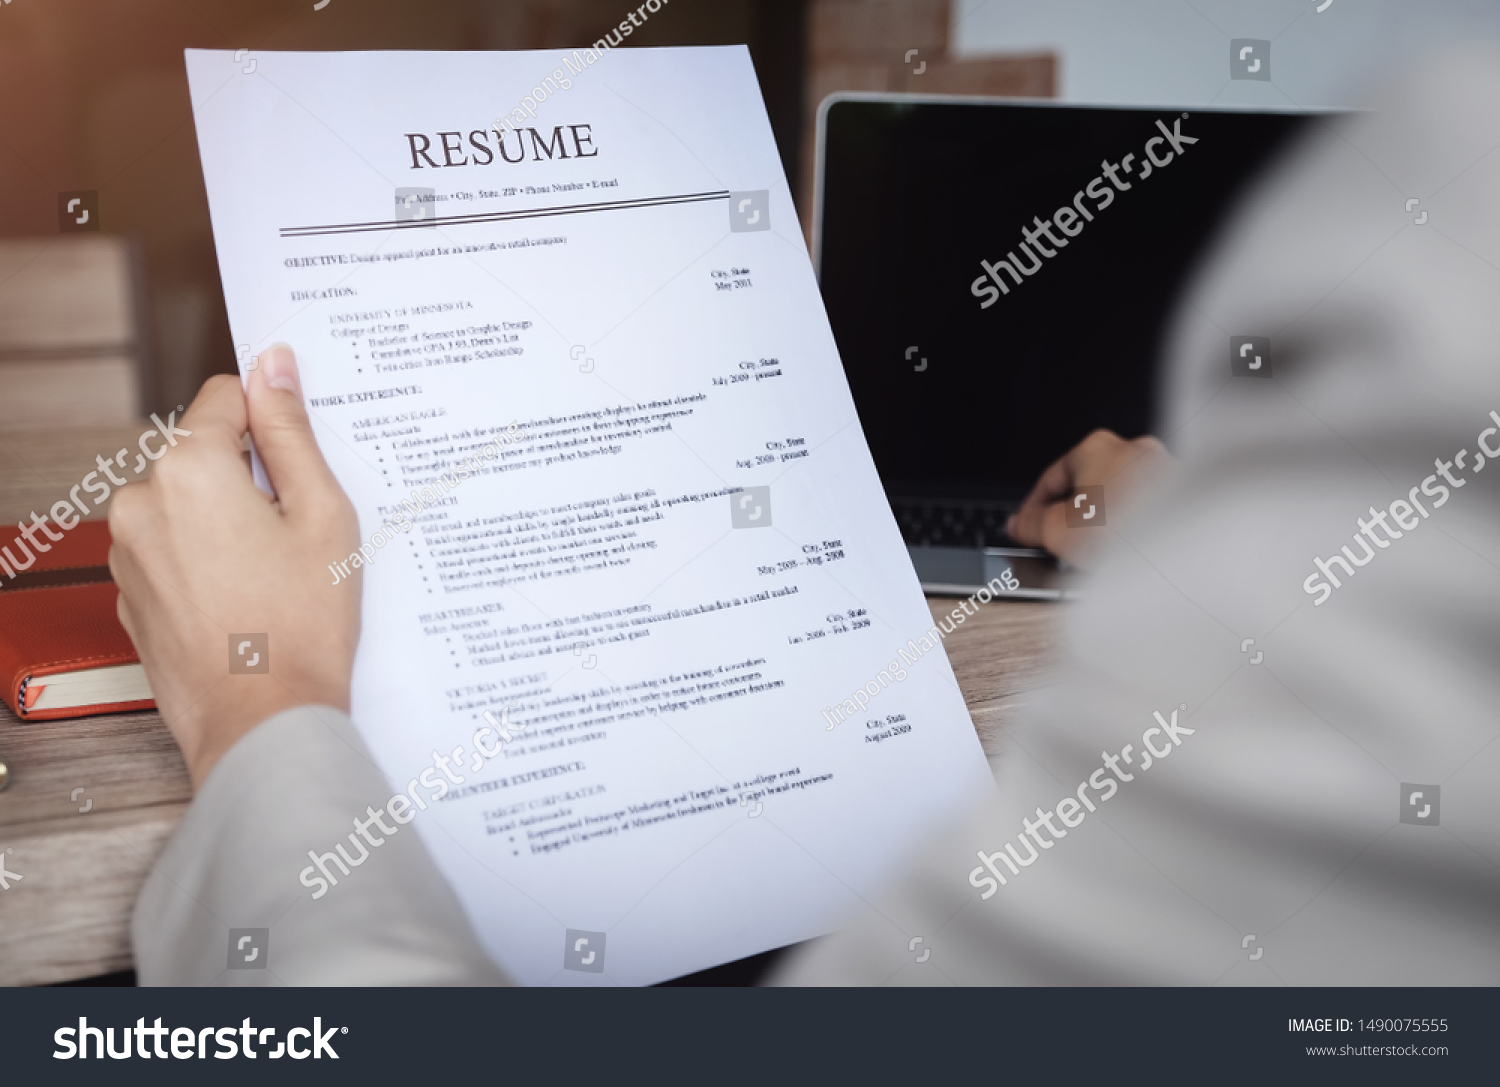 hr audit resume applicant paper interview business finance stock image for photo and with Resume Resume Paper For Interview